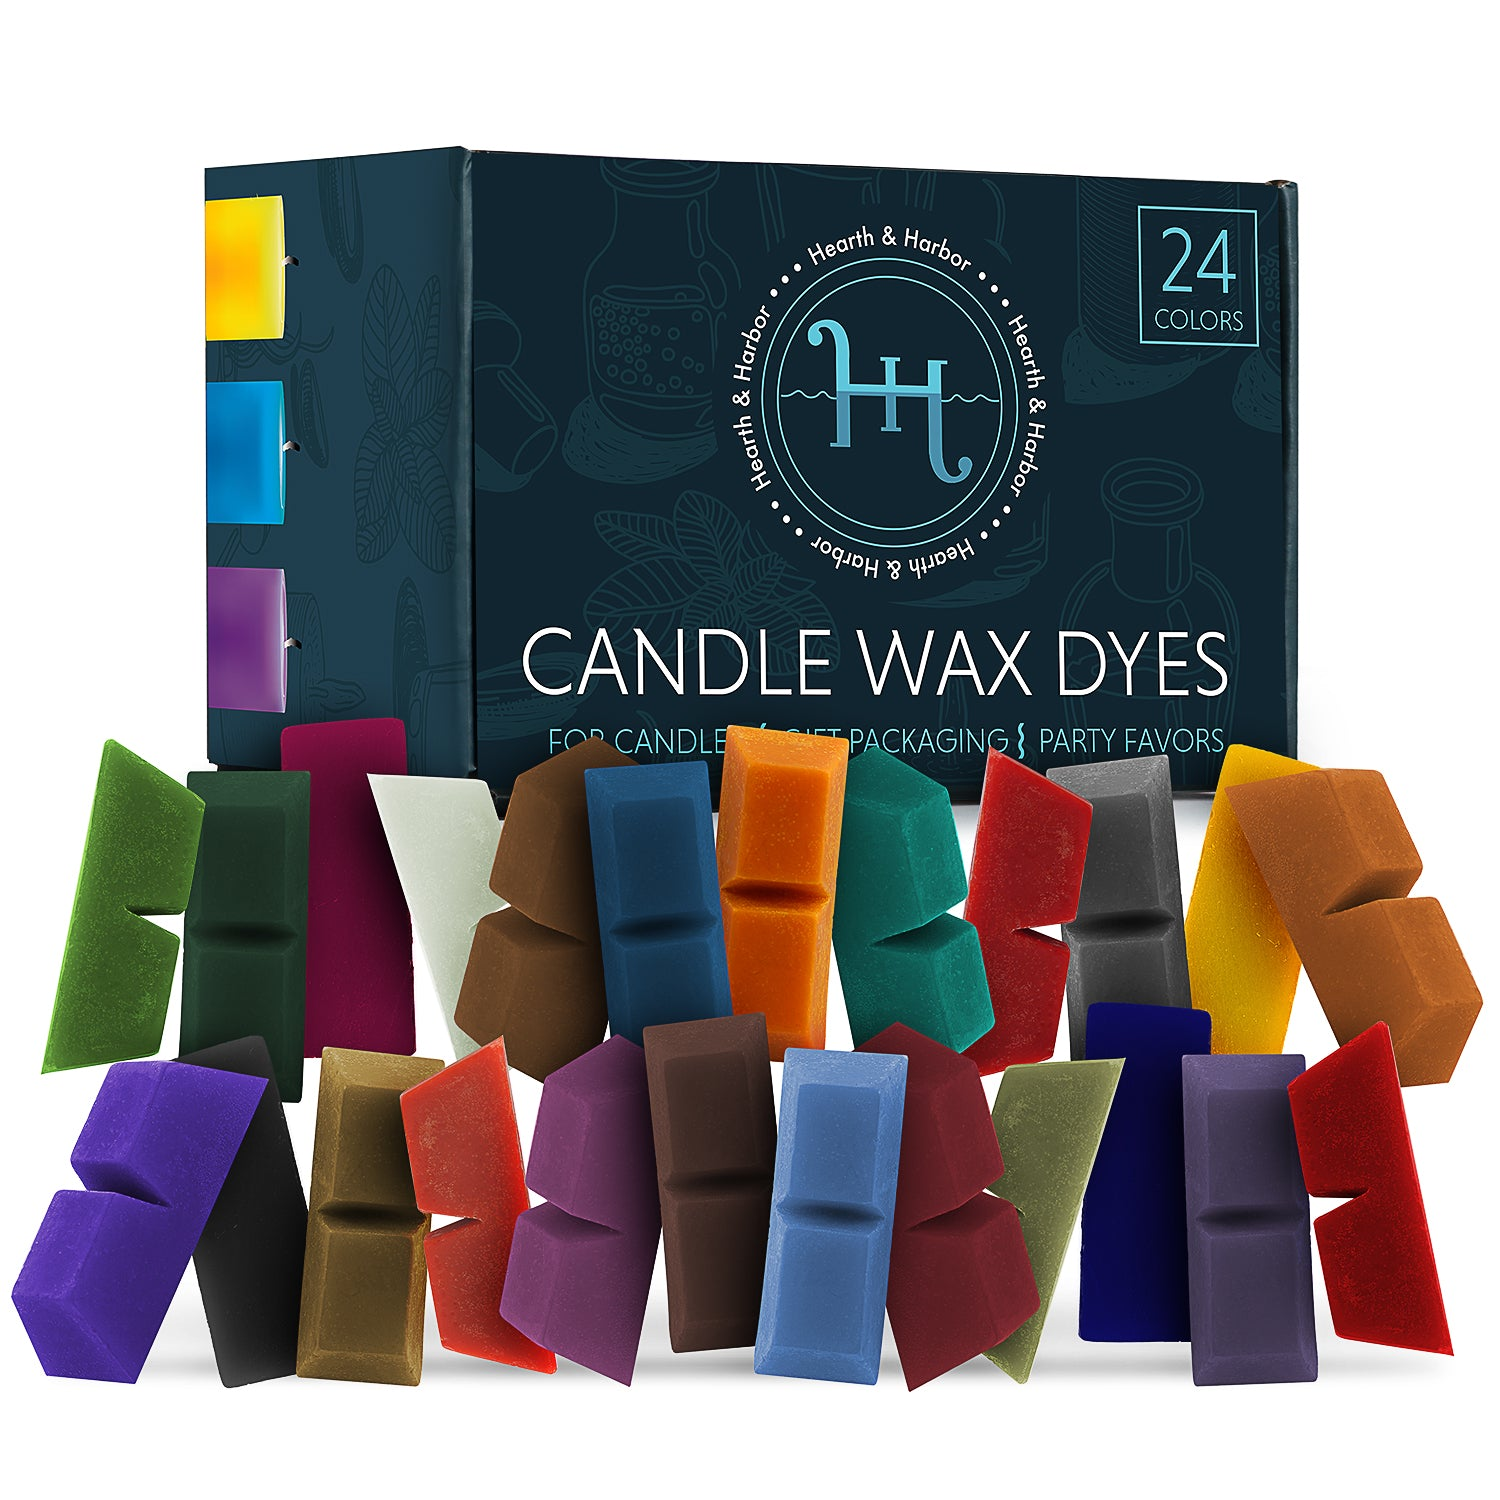 Hearth & Harbor Candle Wax Dyes – 24 Color Blocks for DIY Candle Making – Concentrated Wax Dye Flakes for All Kinds of Wax (Soy/Gel) – Premium Wax Coloring Dye Chips – Nontoxic Candle Making Supplies